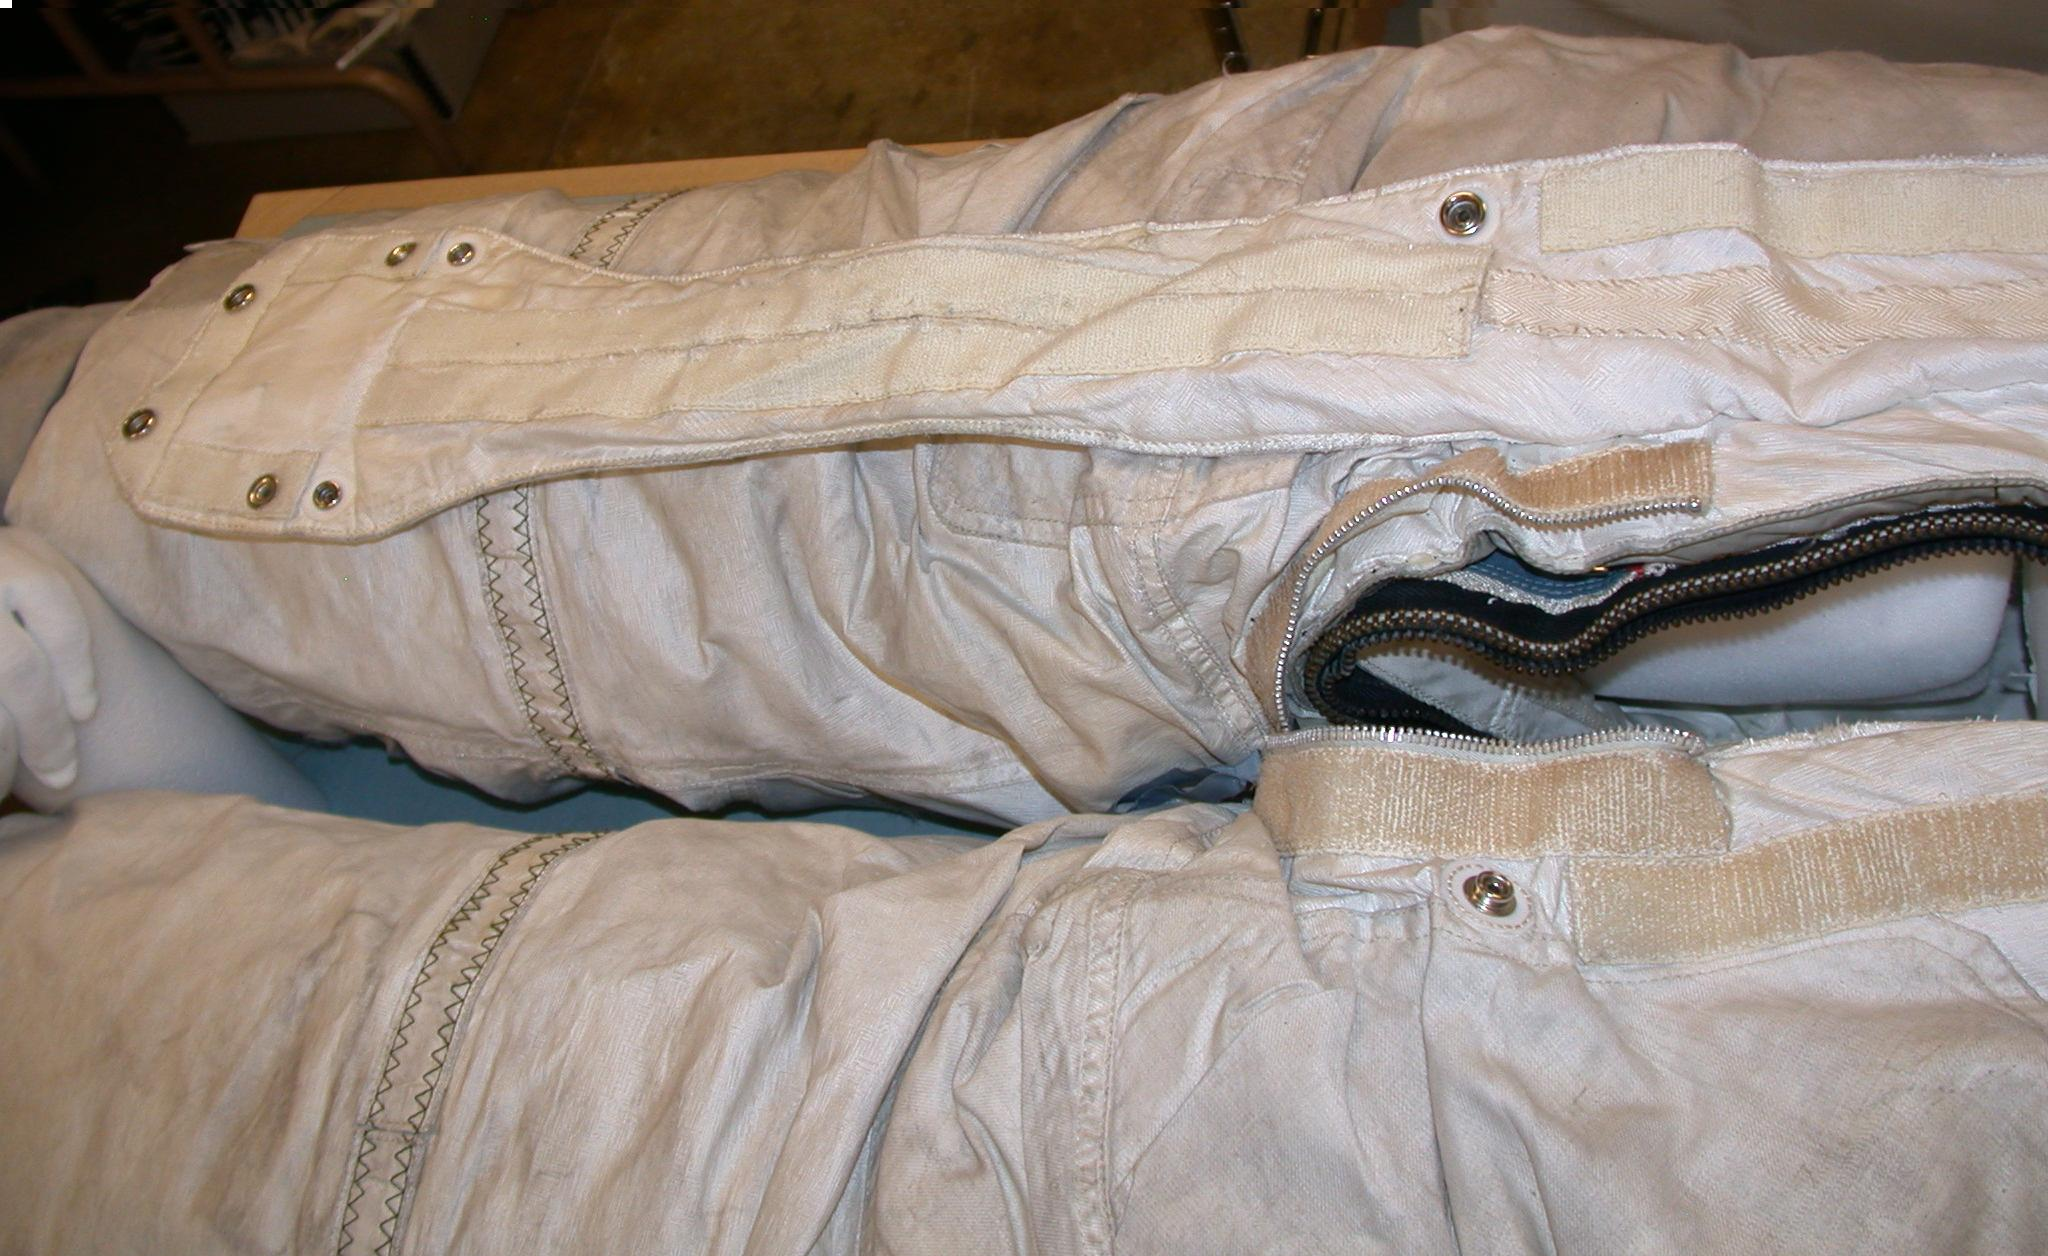 Apollo A7L spacesuit zippers and pressure tests ...